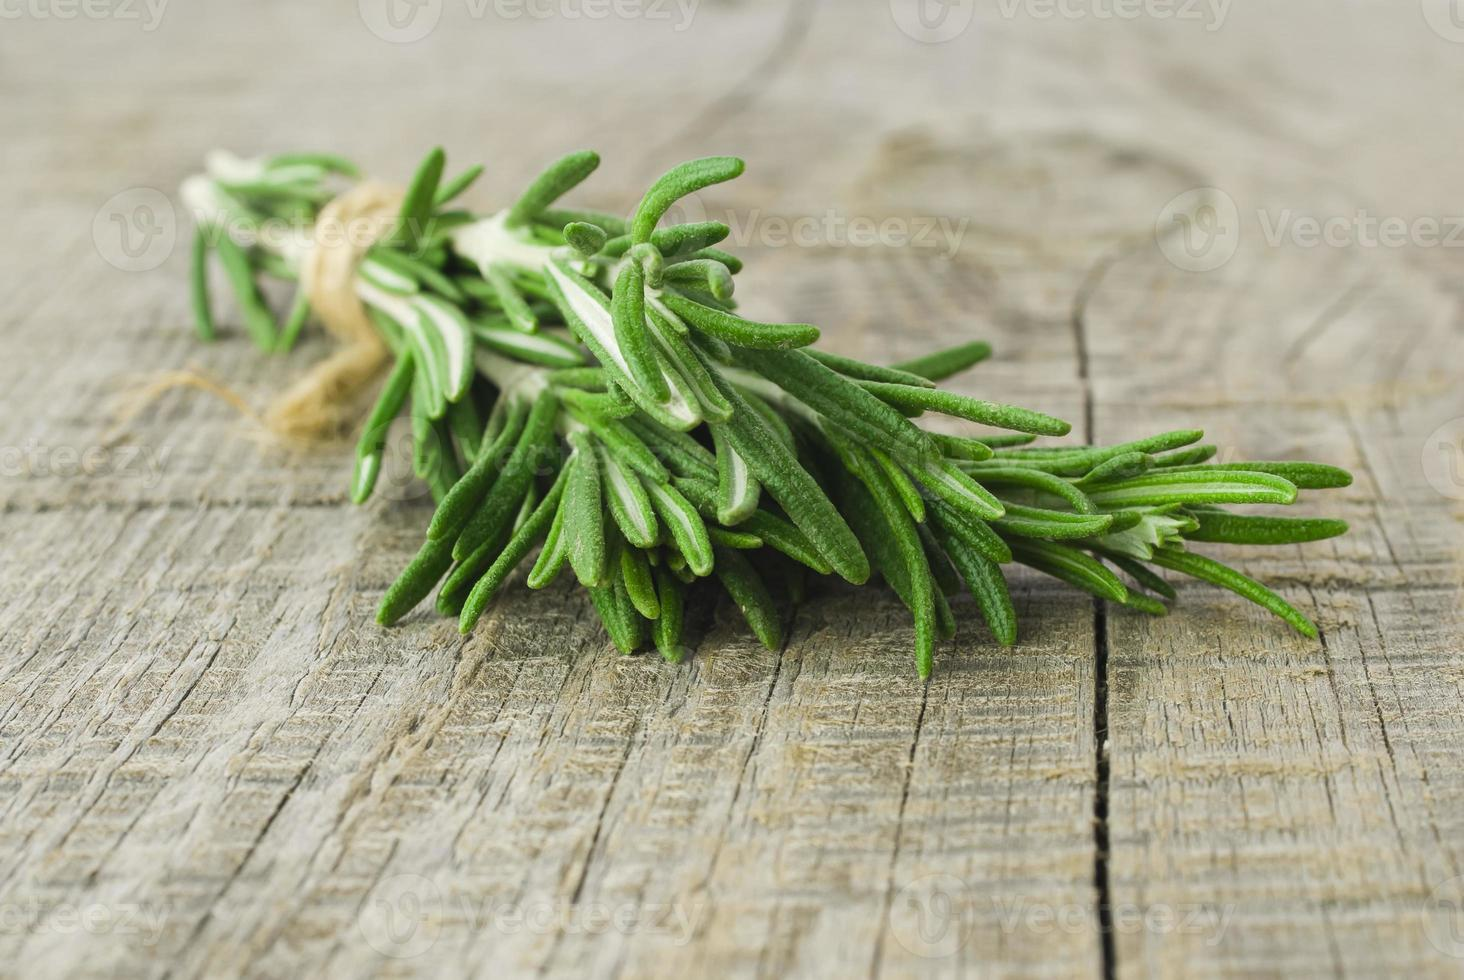 Rosemary bound on a wooden board photo